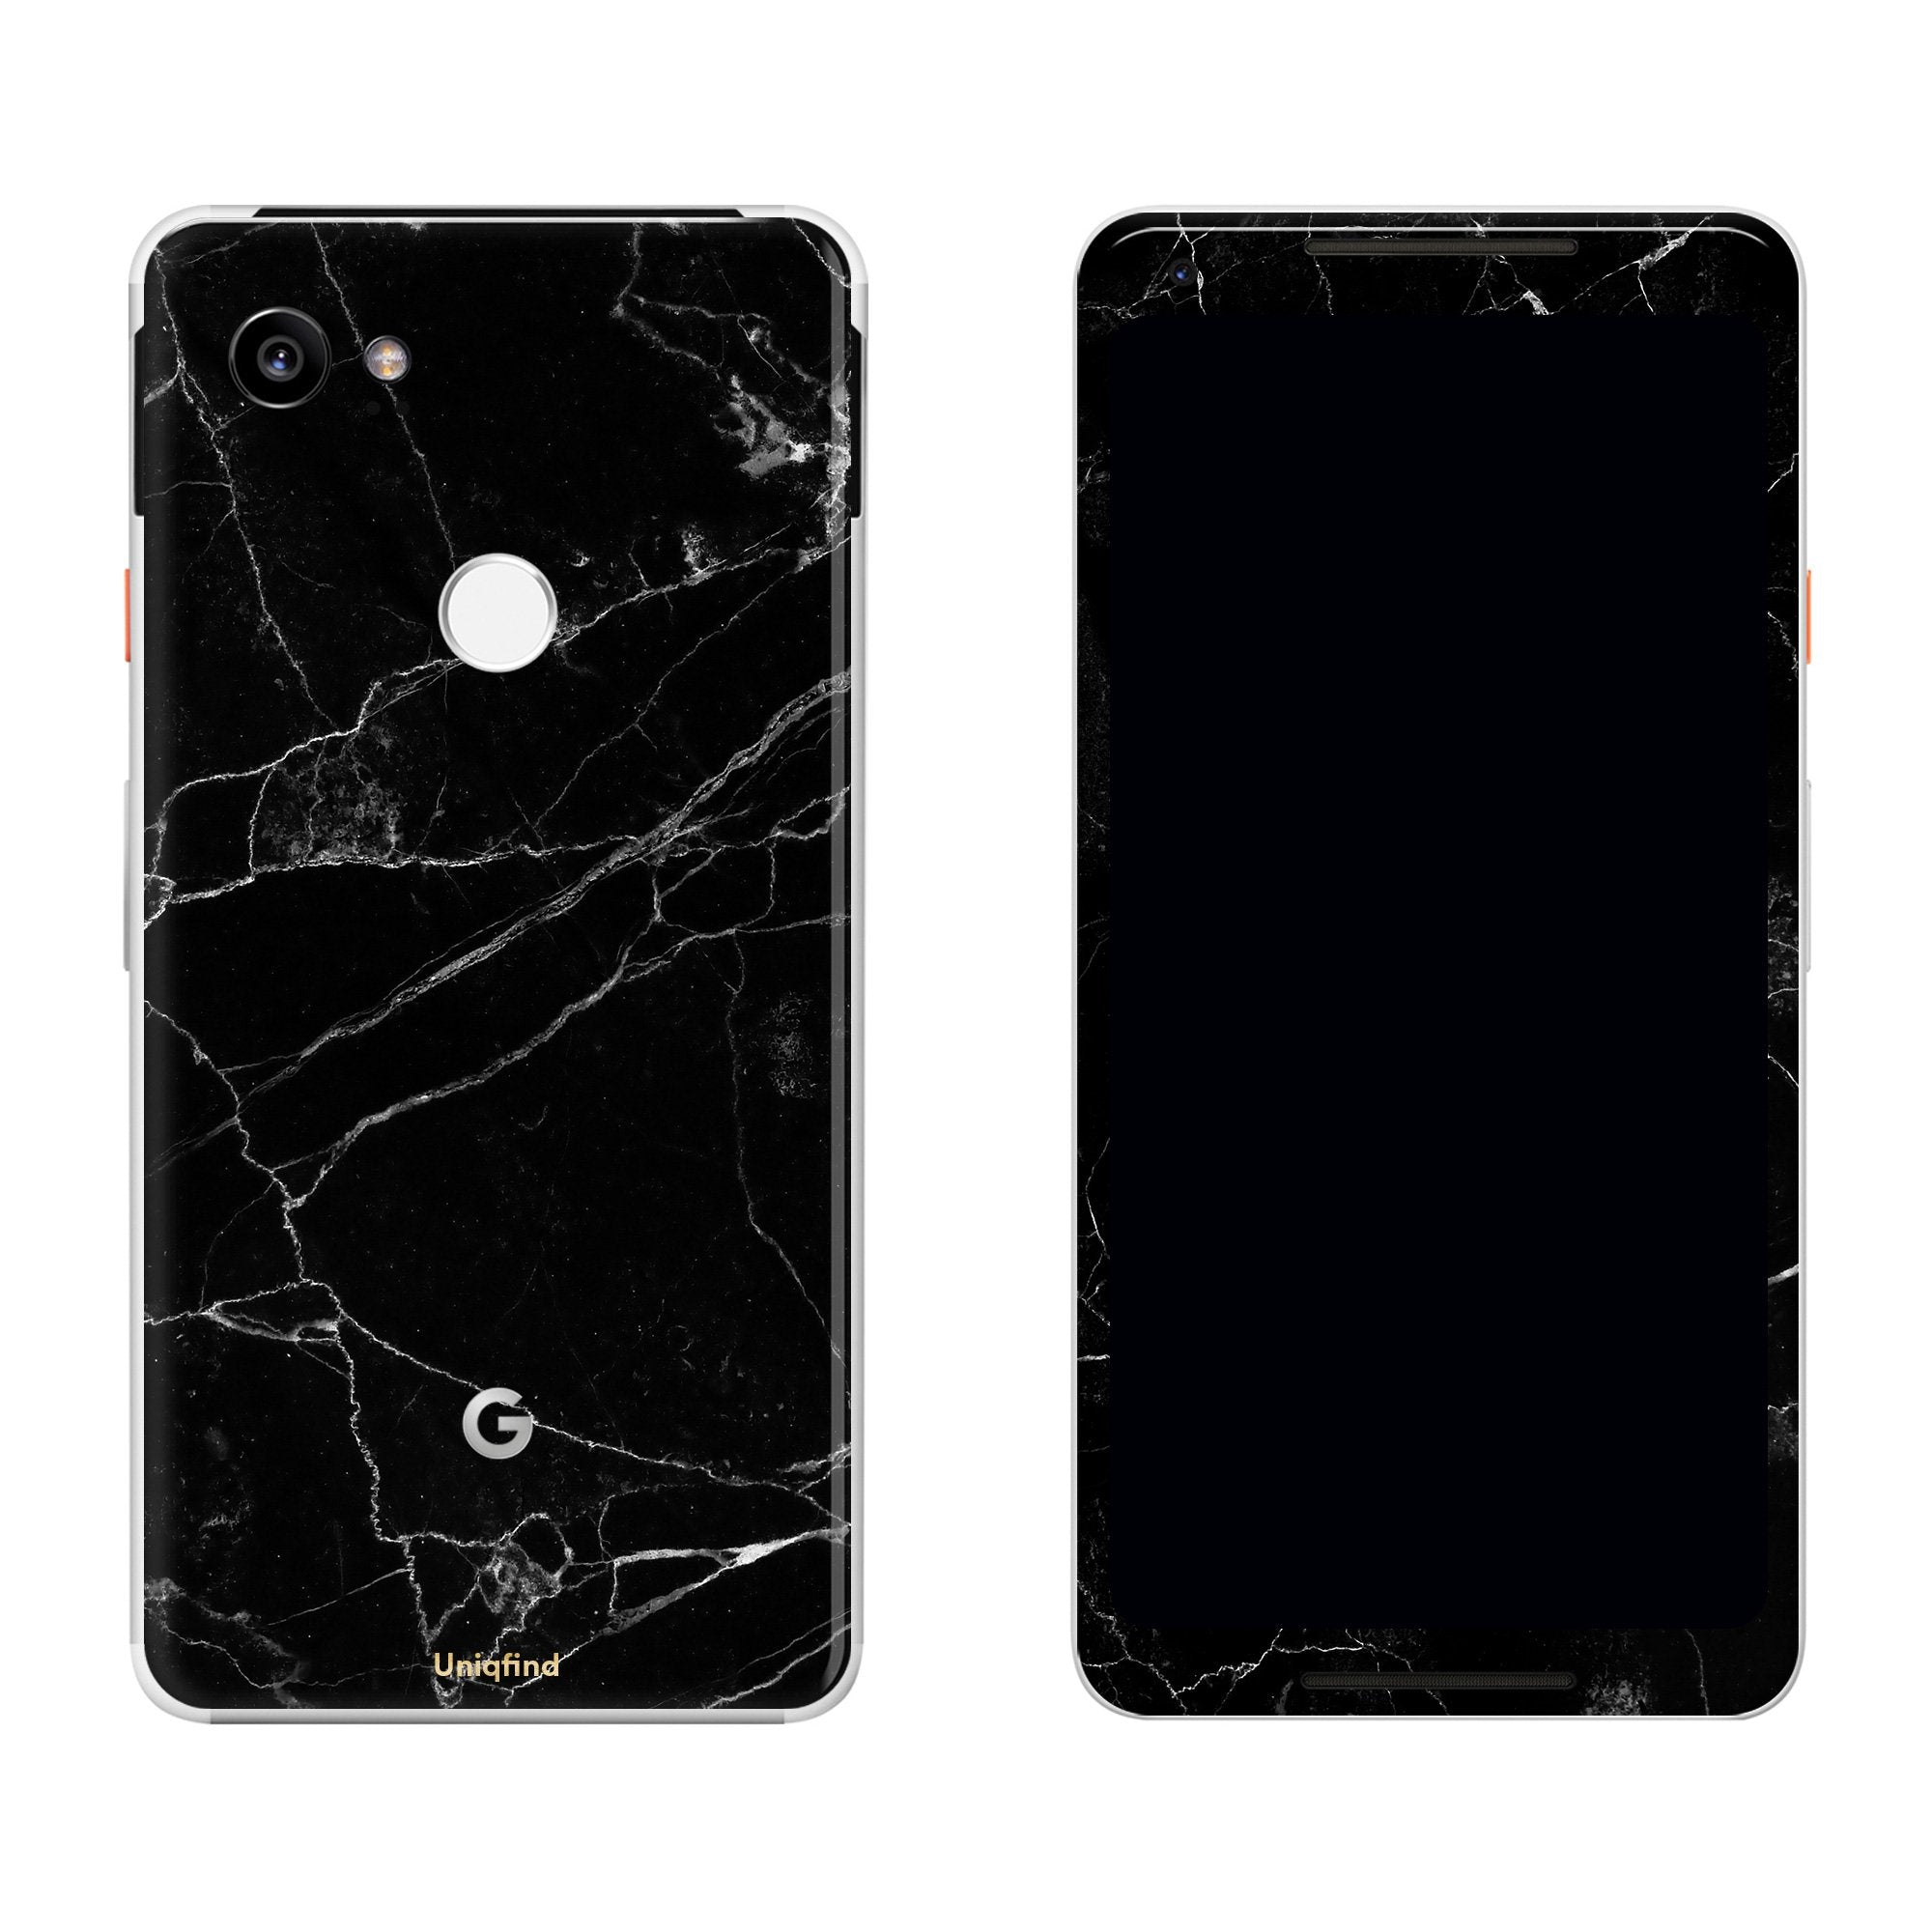 Black Marble Pixel 2 XL Skin + Case